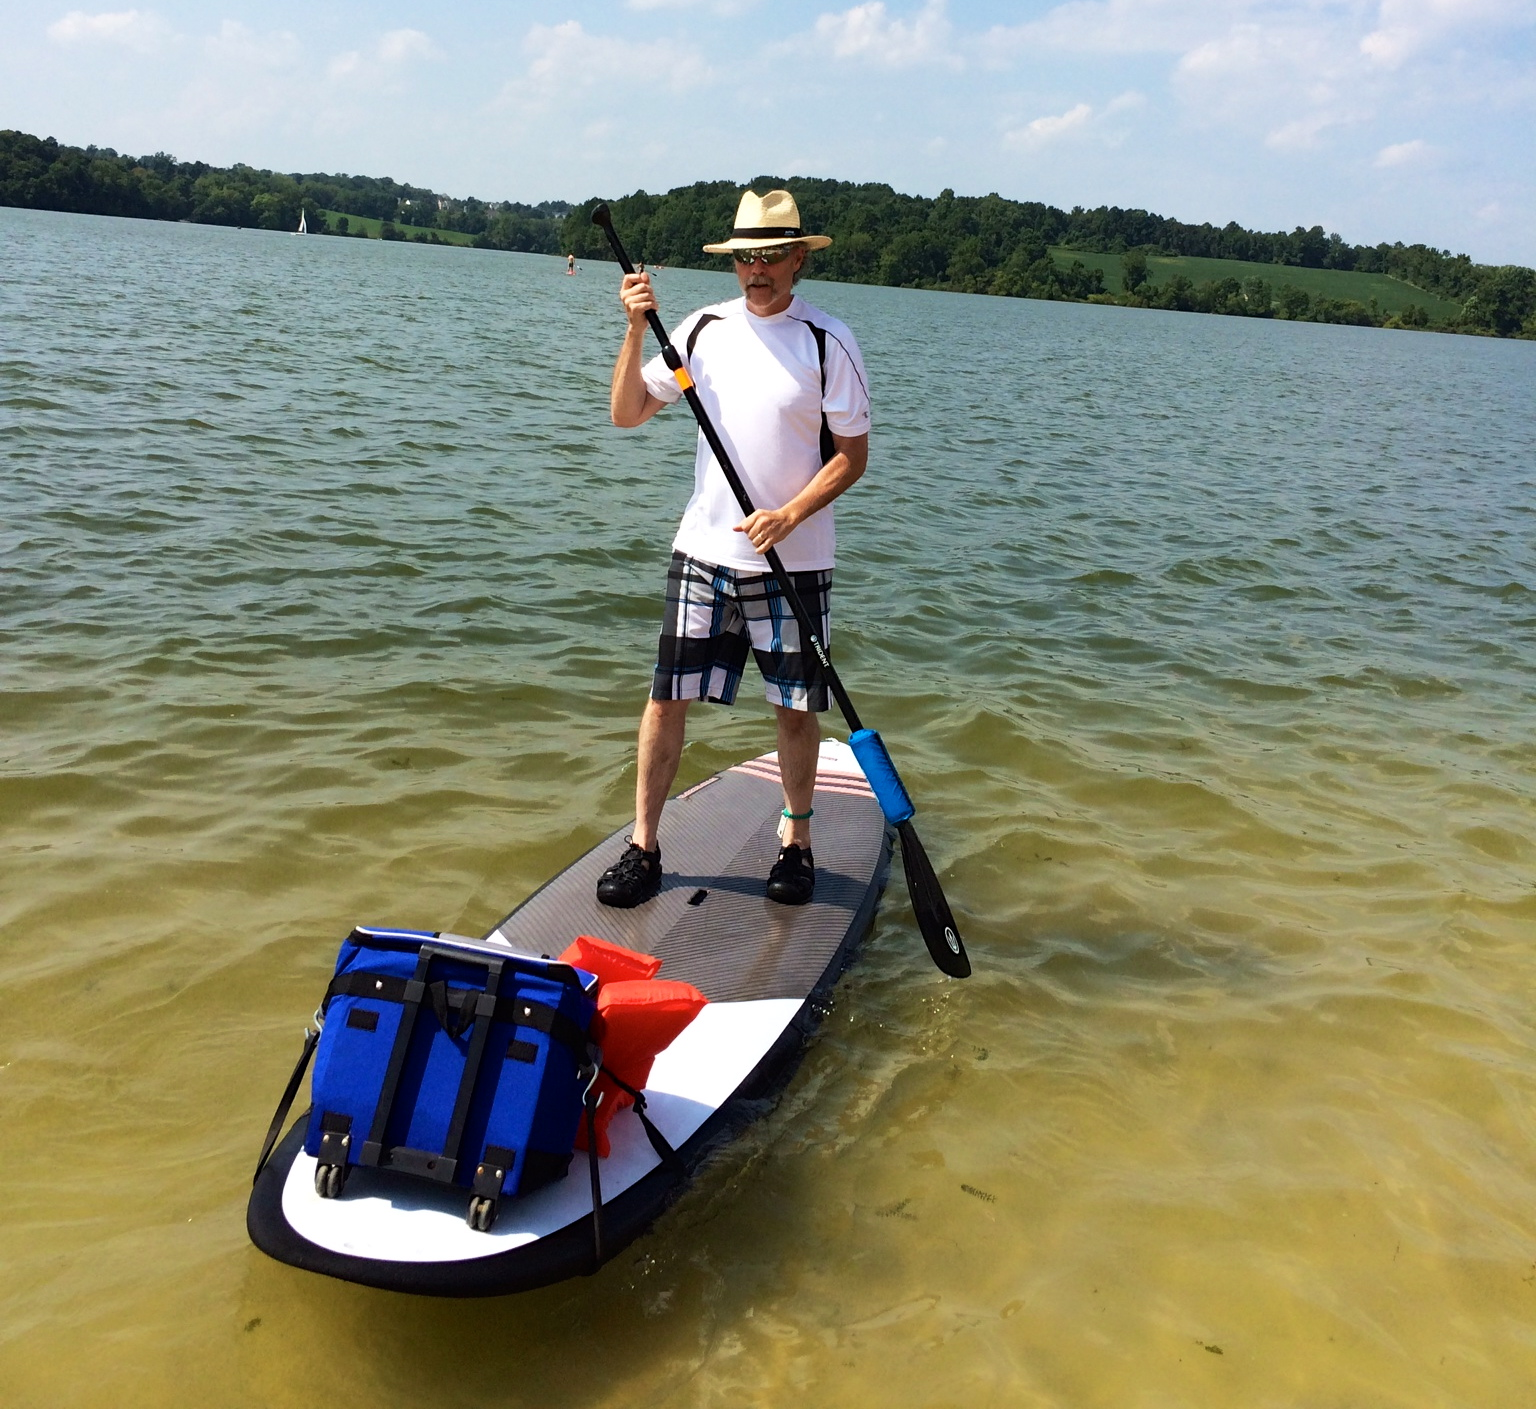 Paddle boarding with refreshment aboard